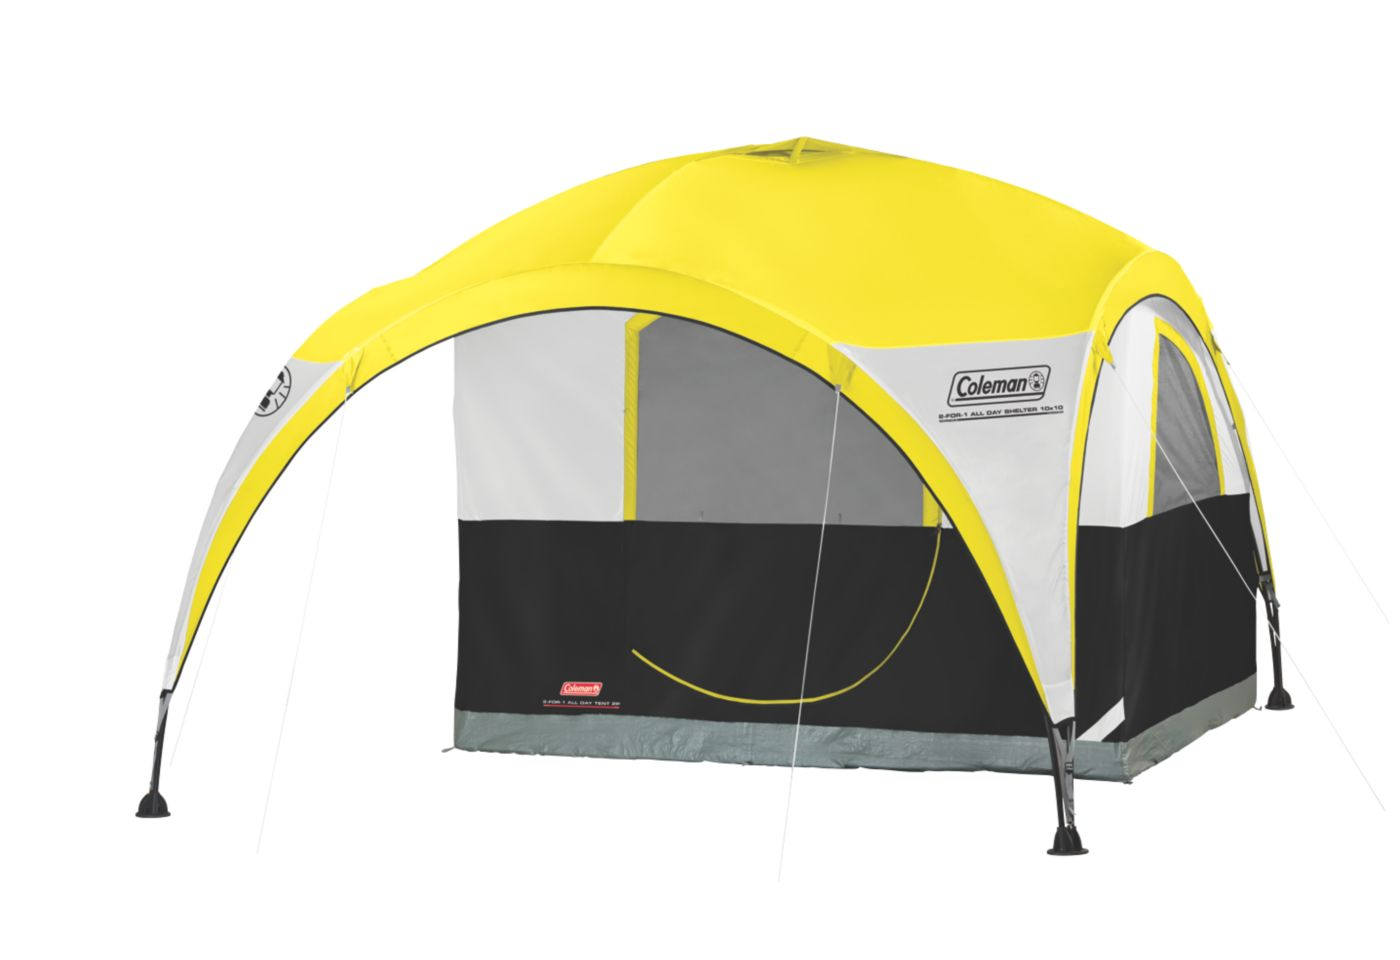 ... Tent · 2-For-1 All Day 2-Person Shelter u0026 ...  sc 1 st  Coleman & 2 Person Dome Tent | Coleman Tents | Coleman